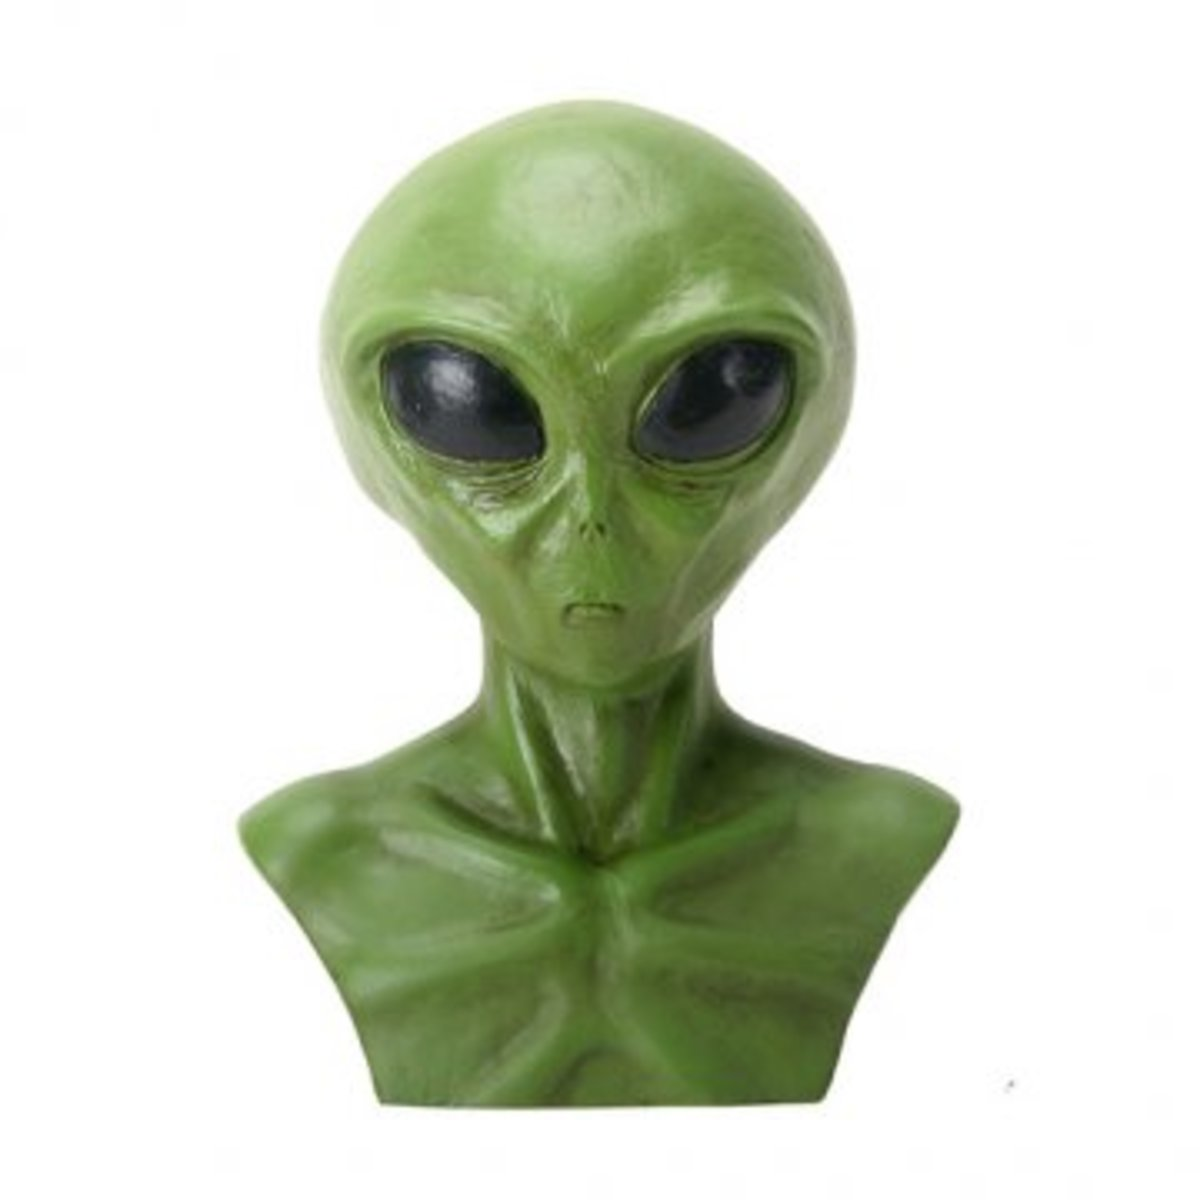 Available at INKEDSHOP.COM: Alien Bust by Summit Collection